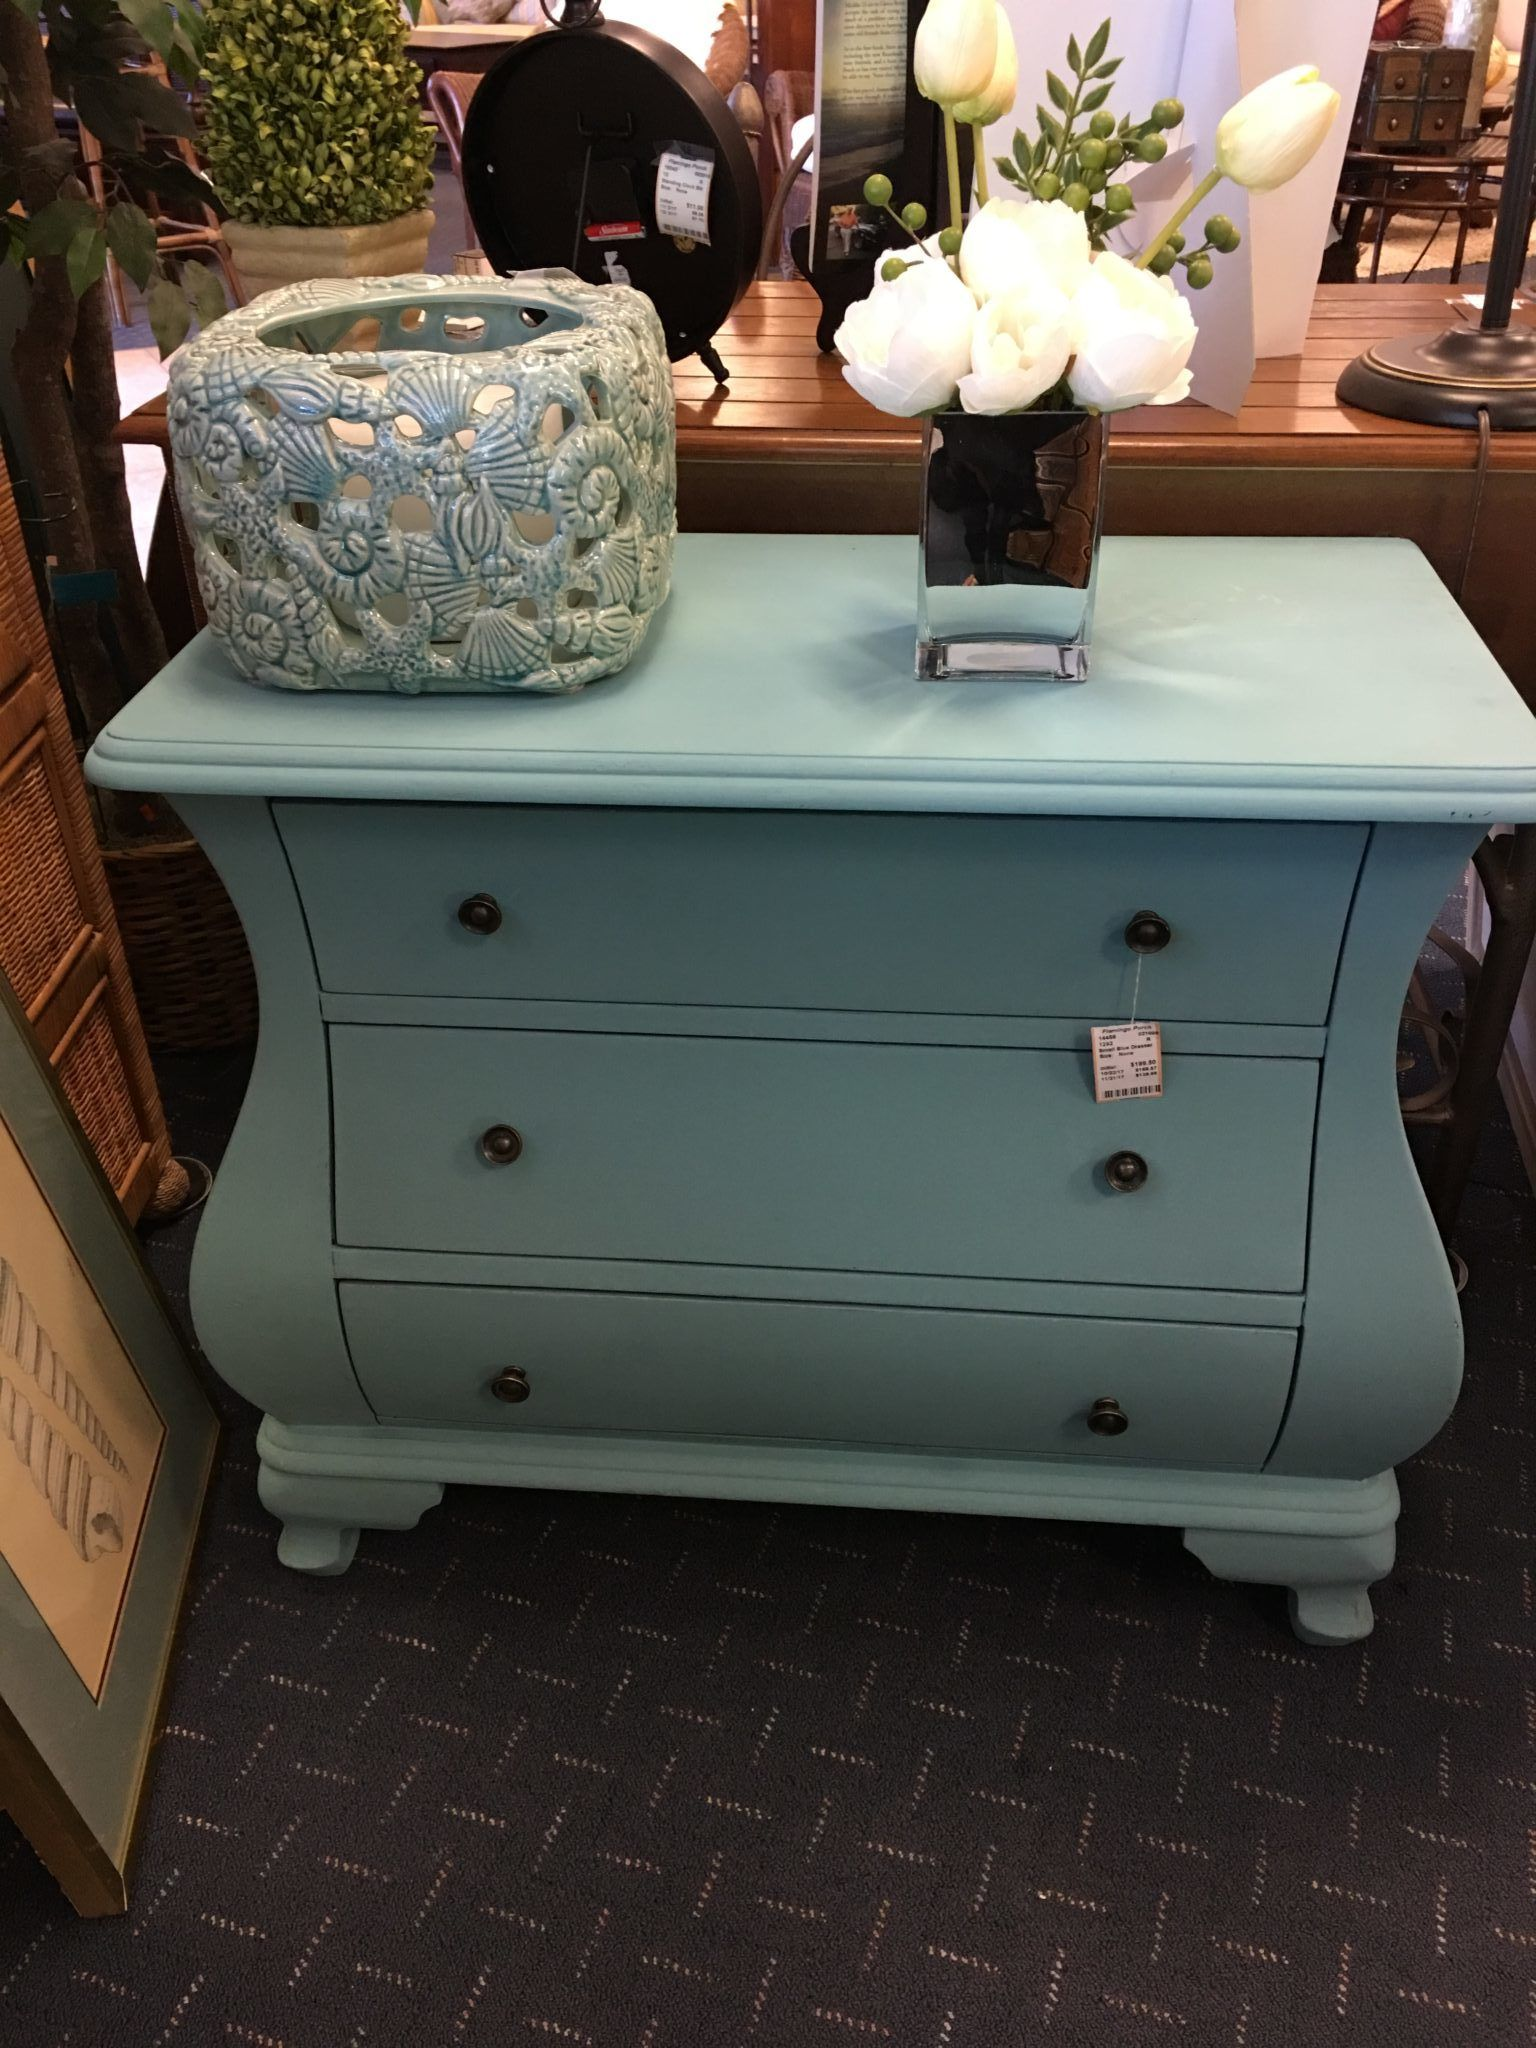 Flamingo Porch Consignment Located In Murrells Inlet Sc Beautiful Upcycled Aqua Small Chest Of Drawers Will Make Any Entry Way Inviting